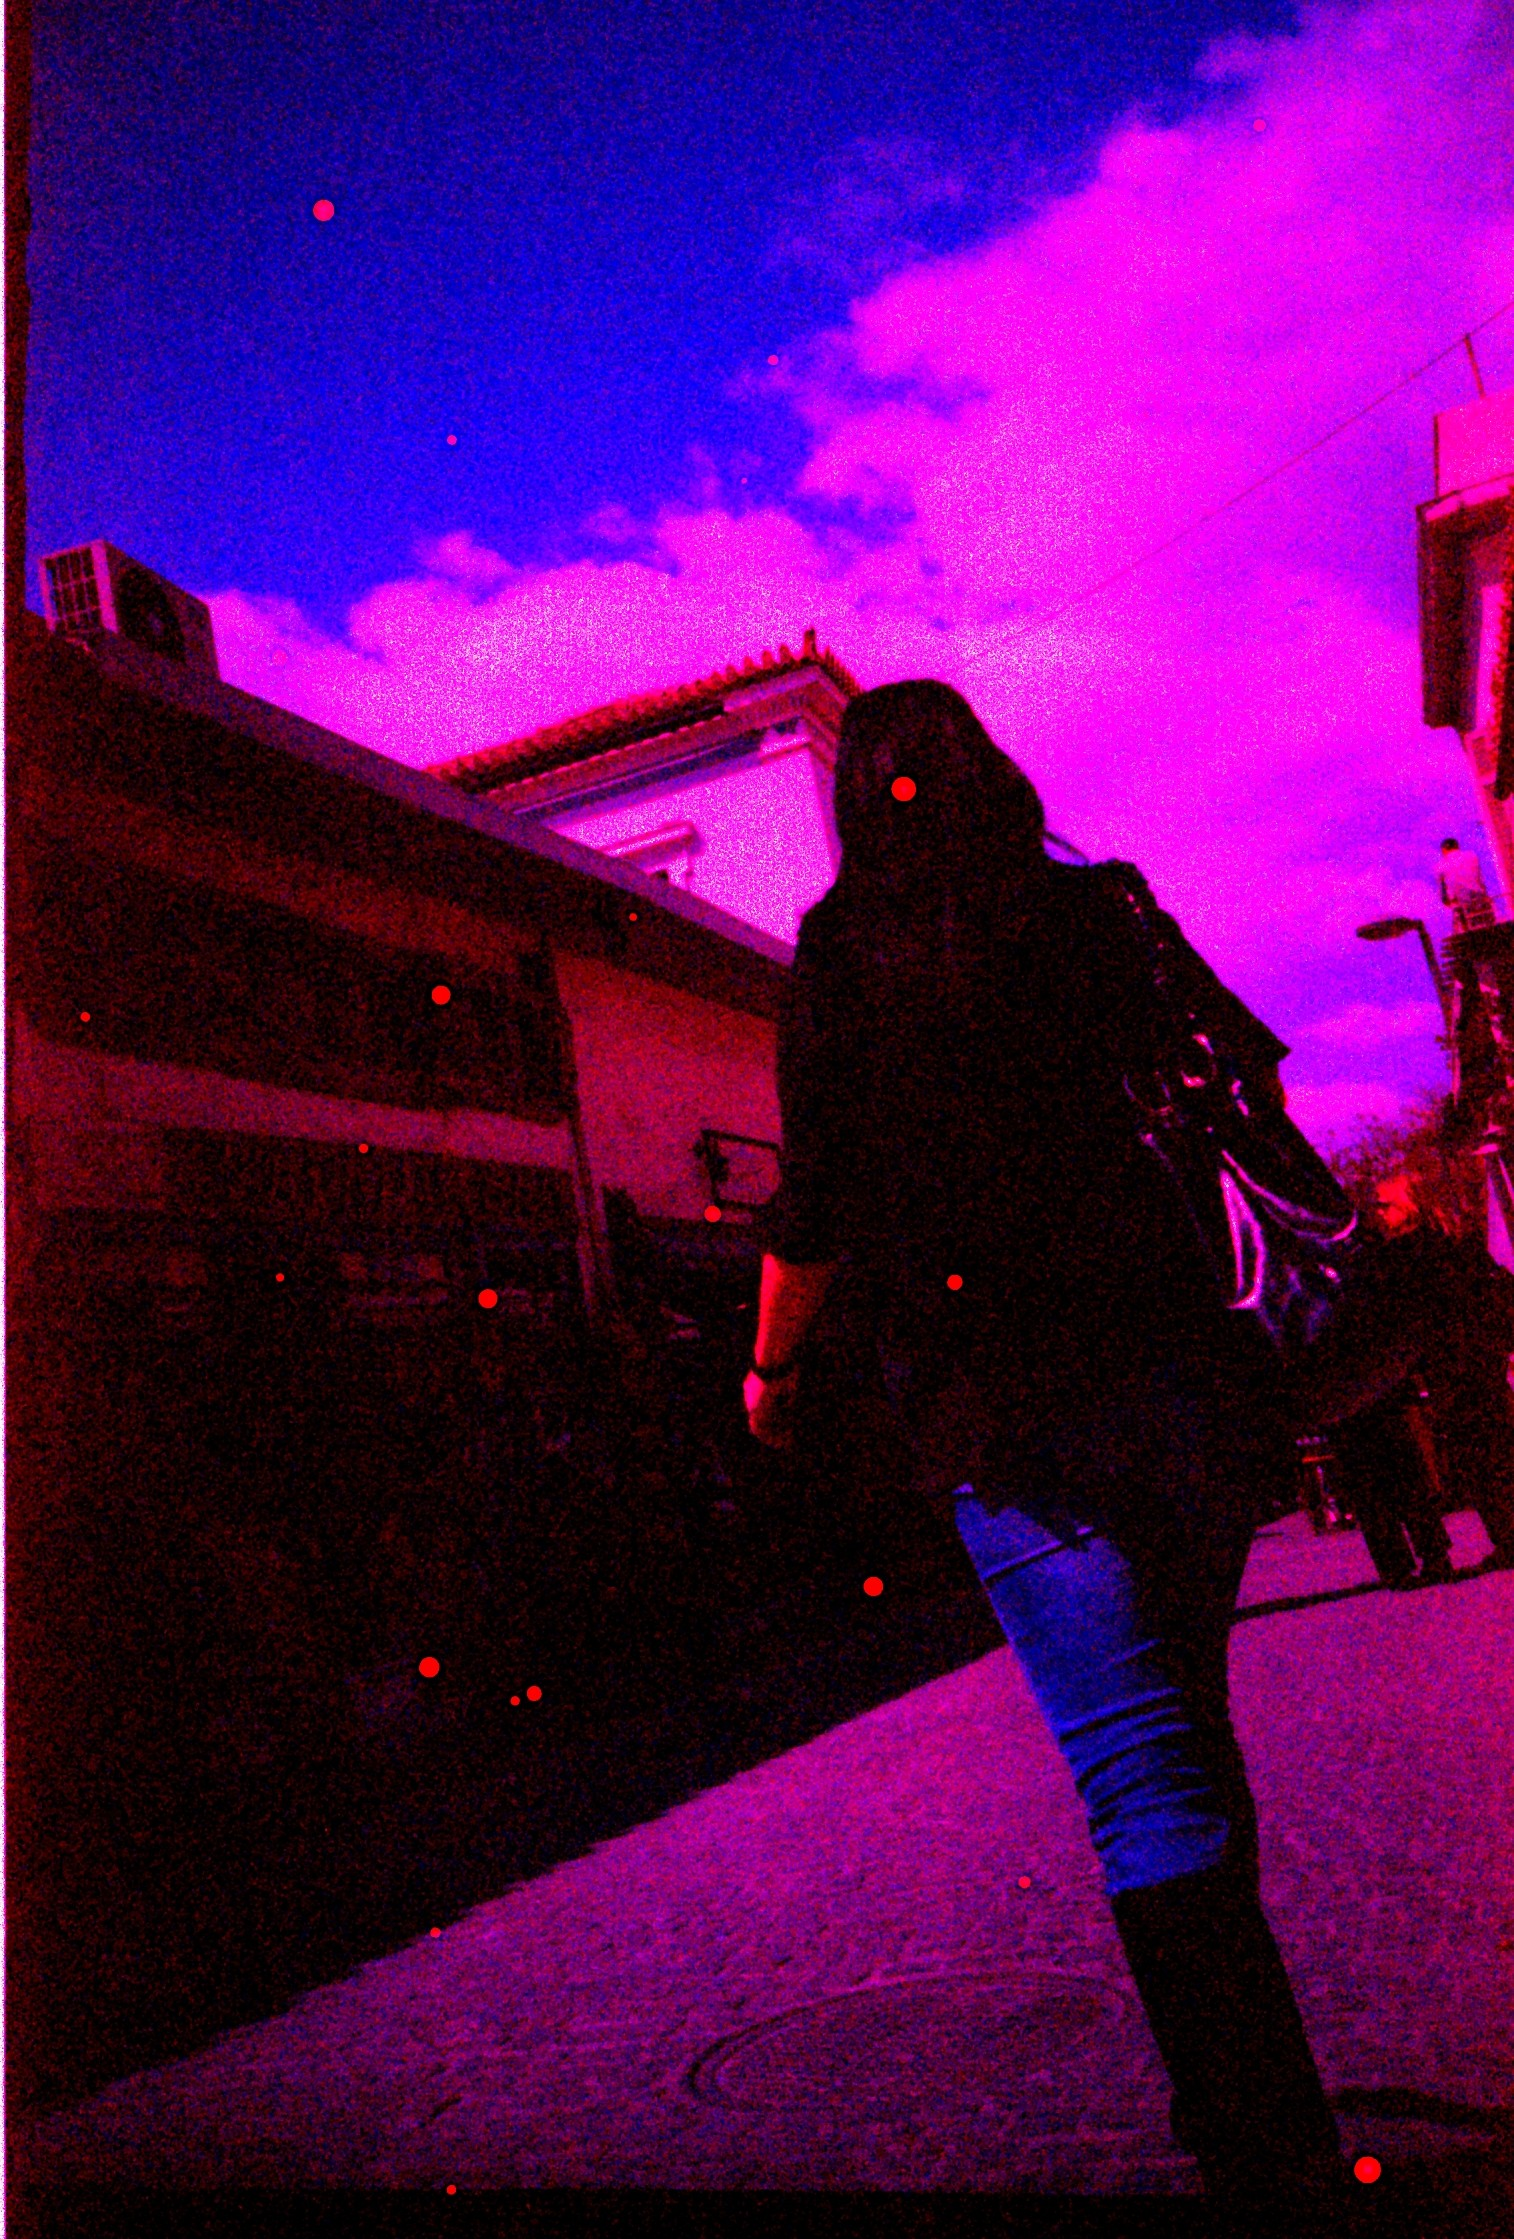 Heavy coloured shifts in cross-processed expired slide film